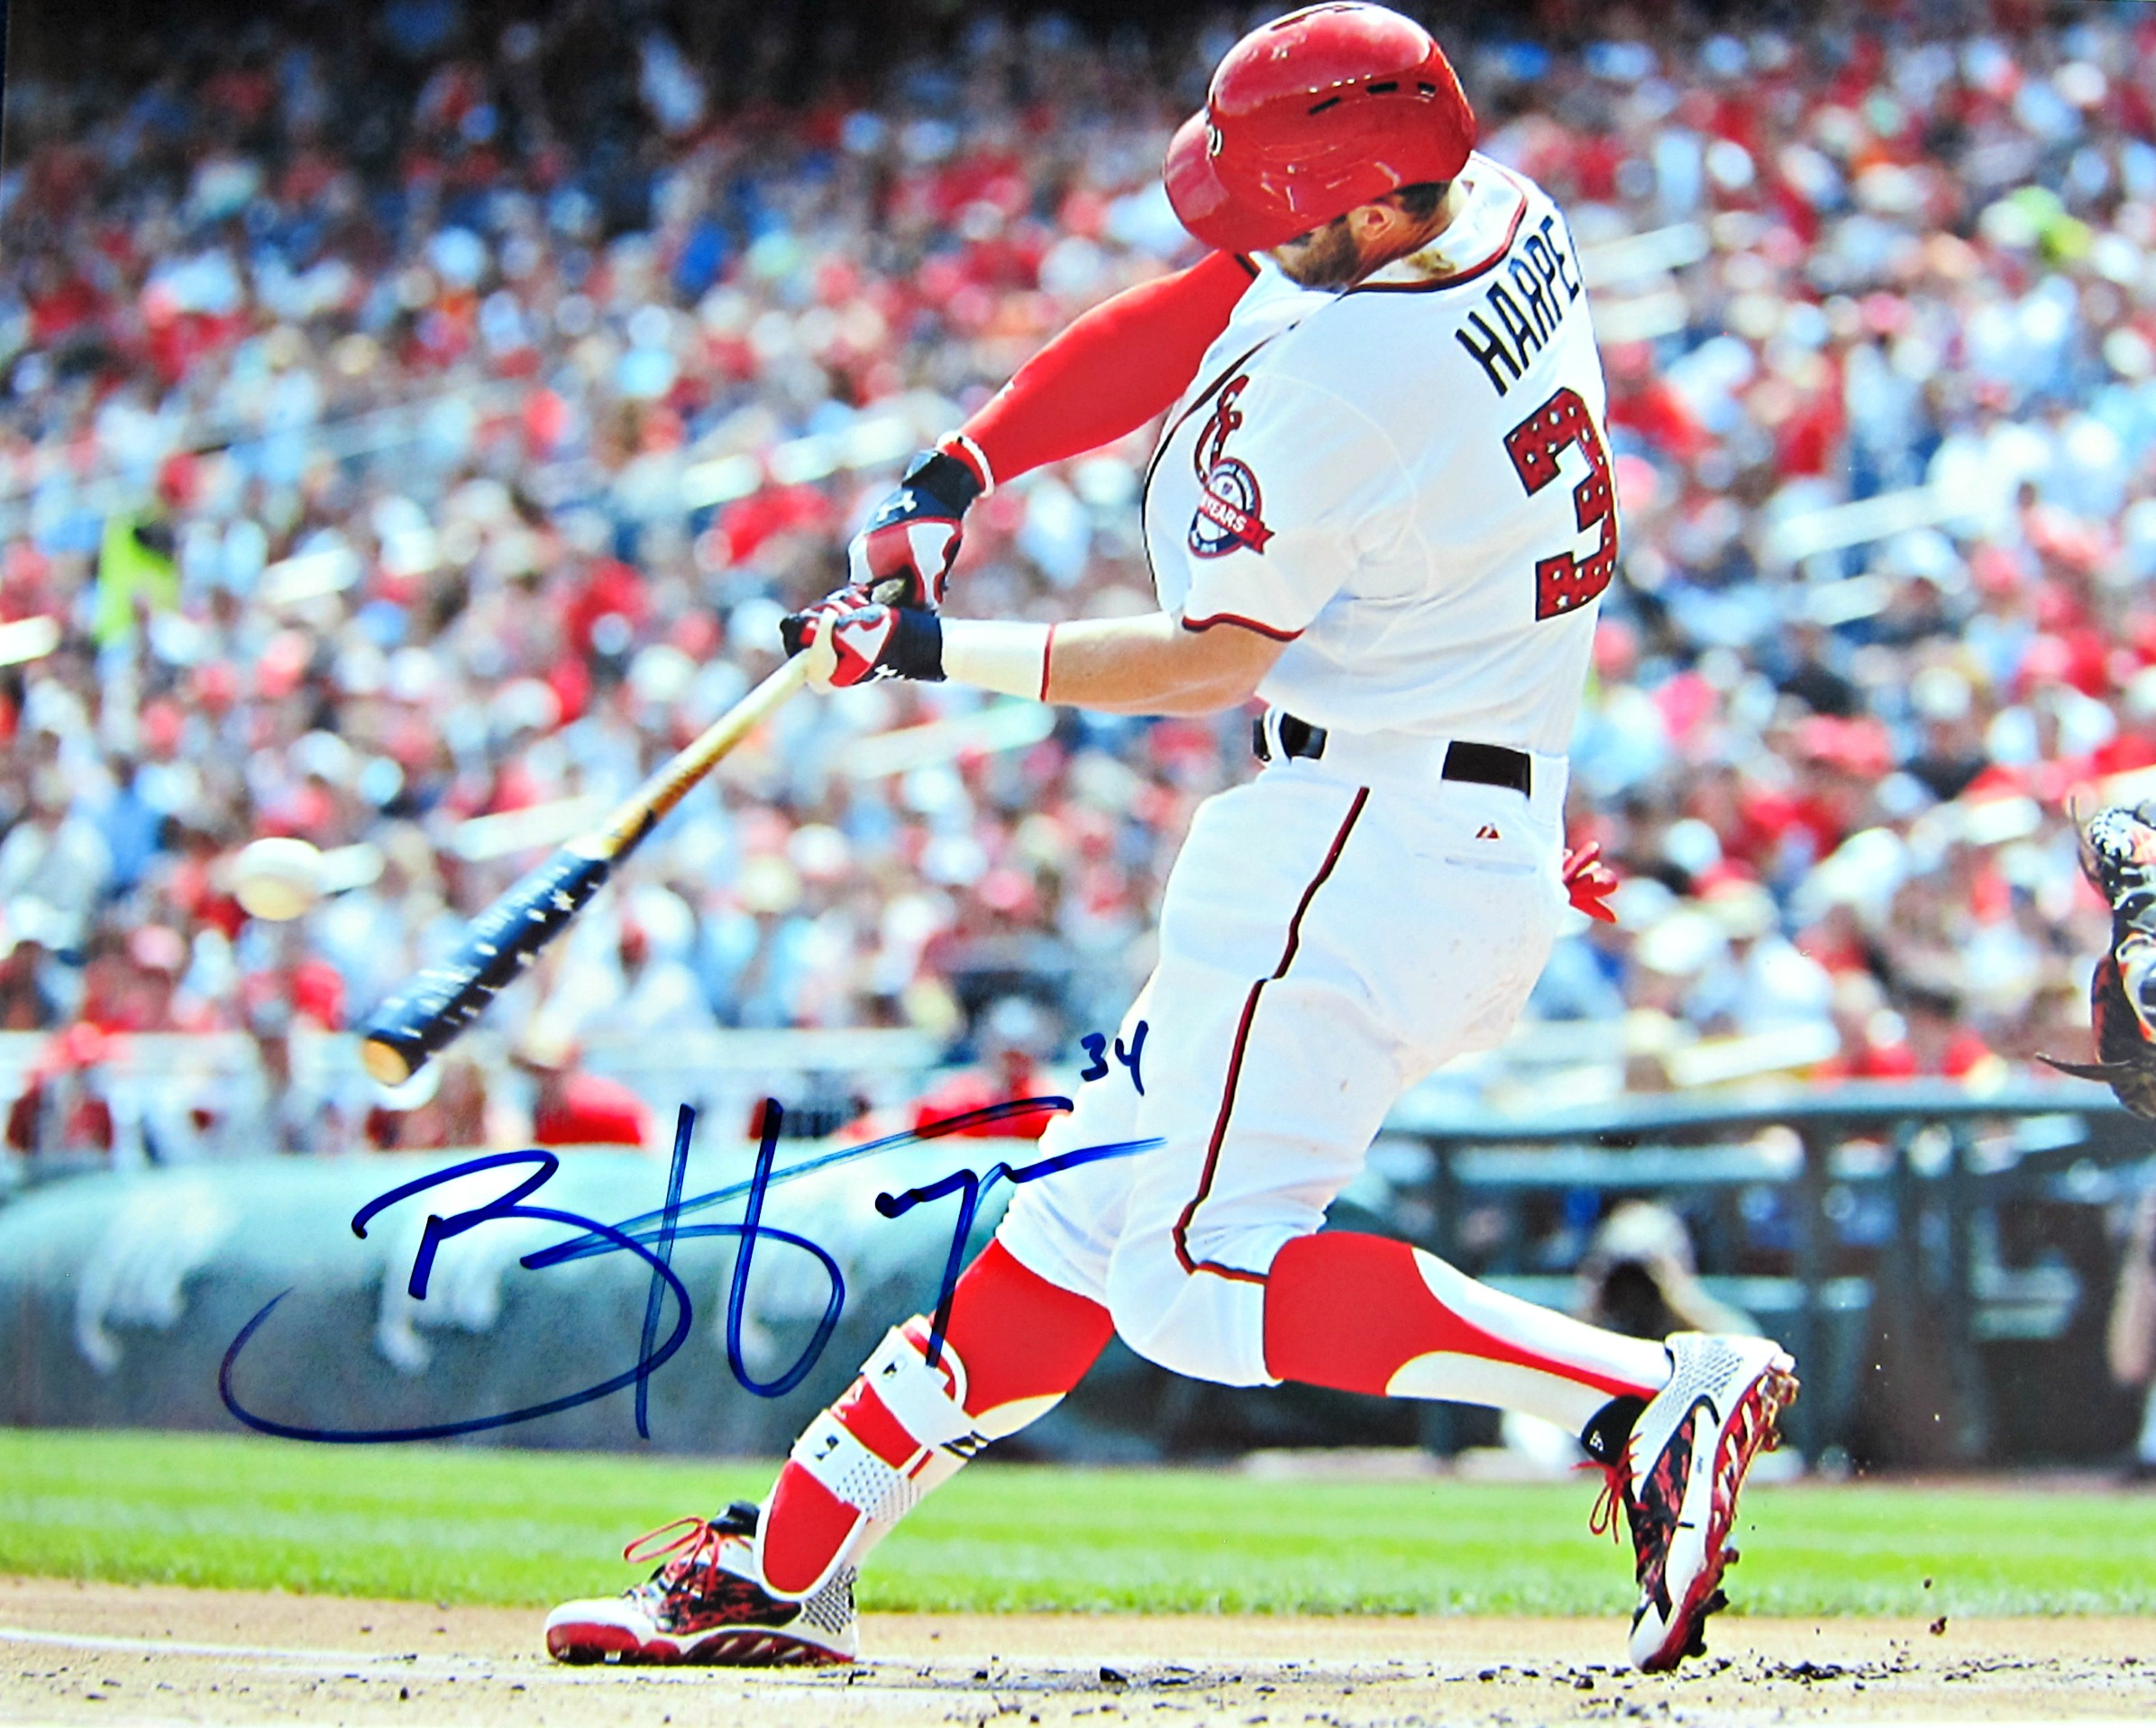 Bryce Harper Autographed Photo - Memorabilia Center 2e6037ec5